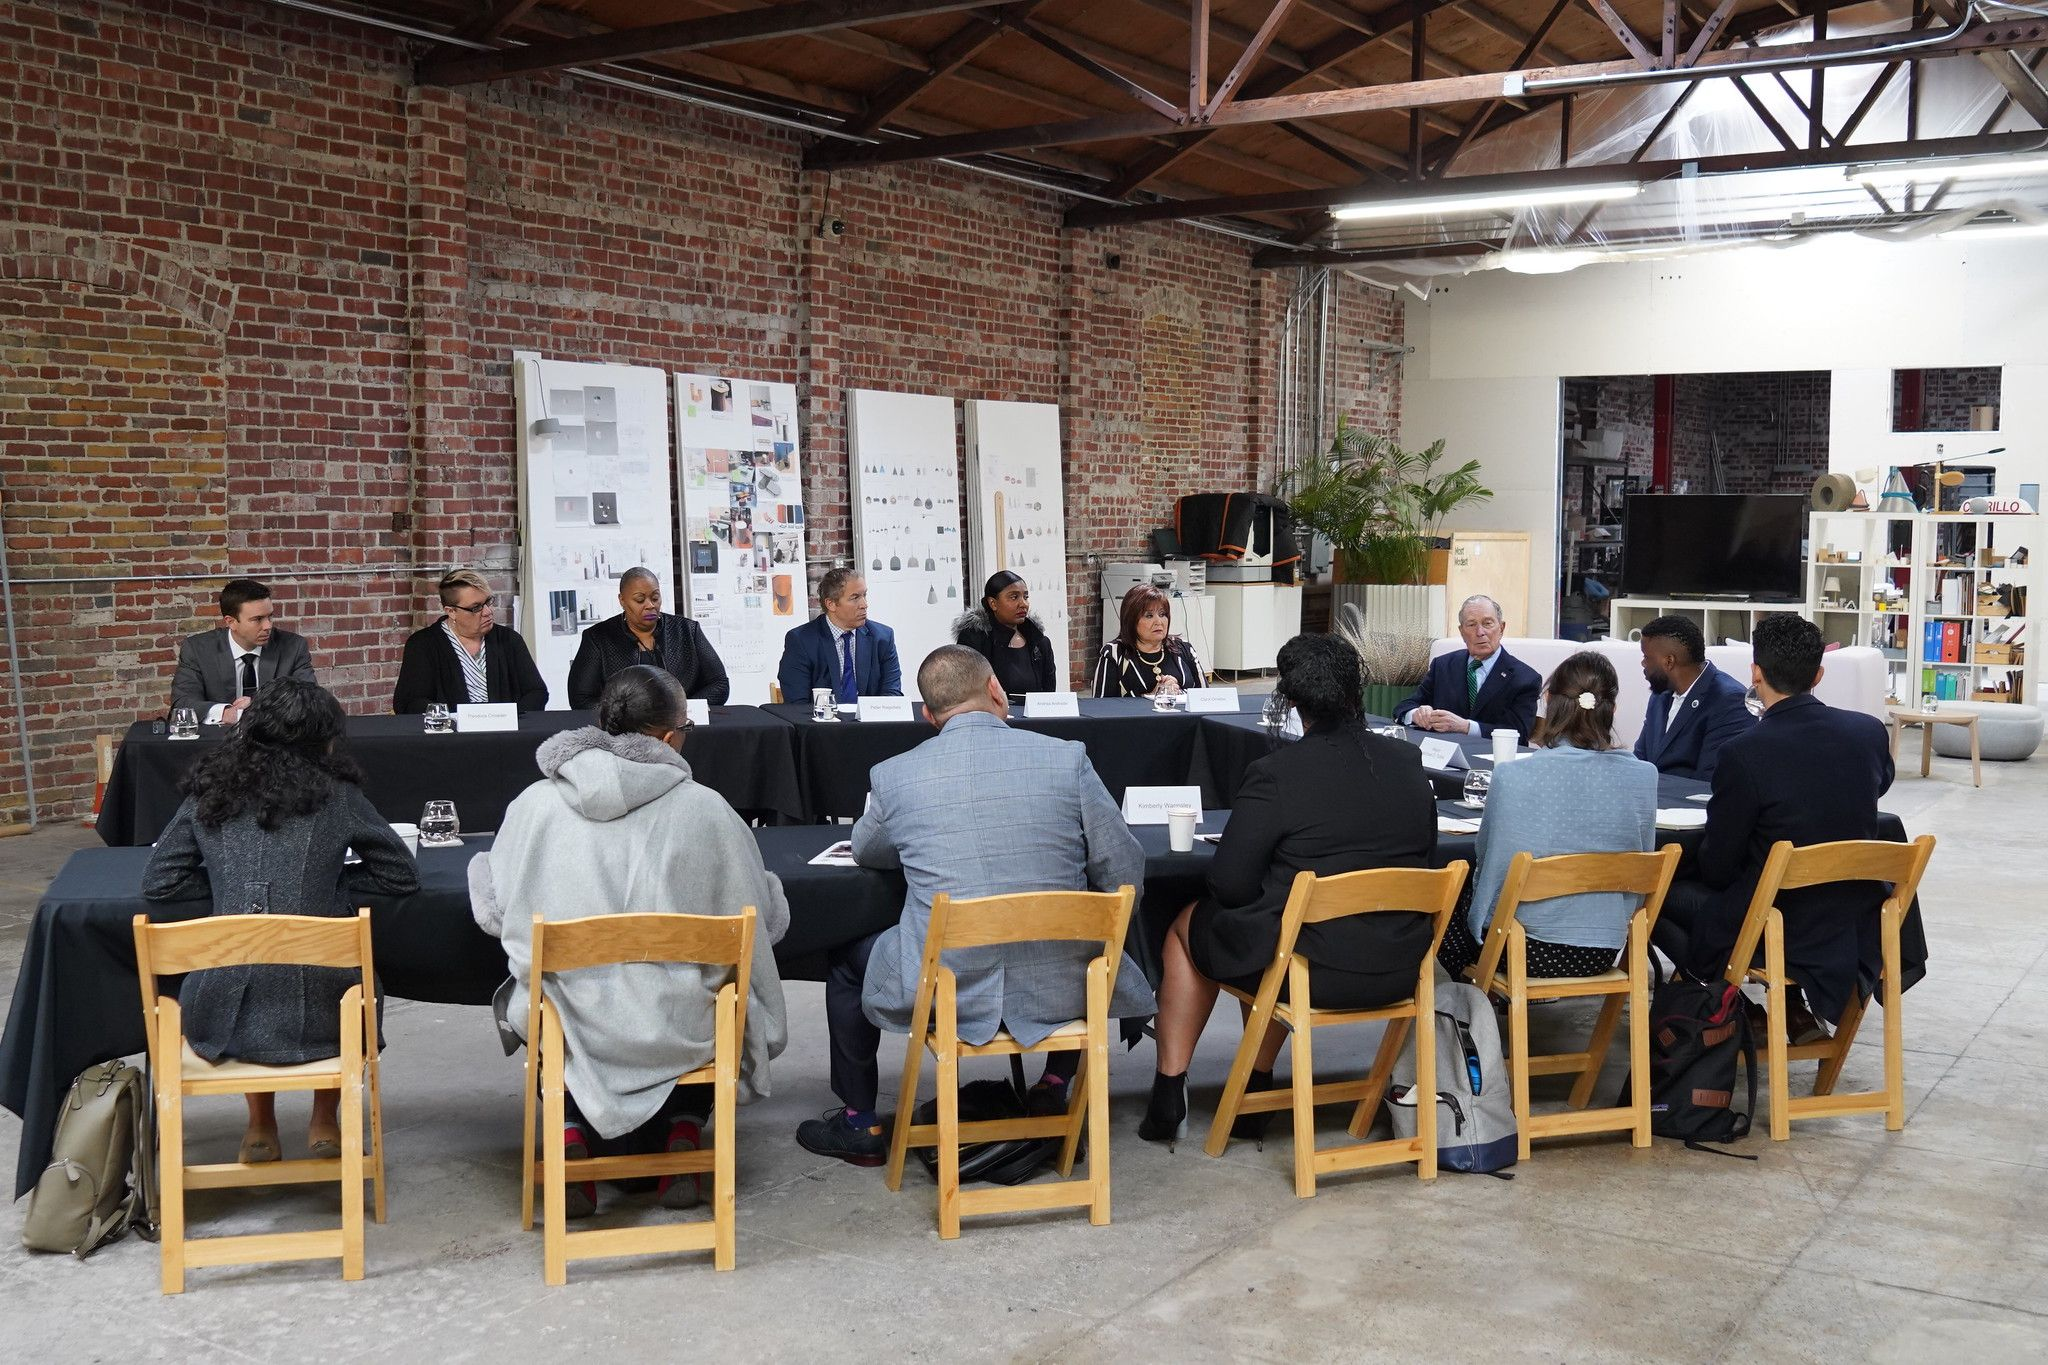 Mike Bloomberg travels to Stockton, California to meet with Stockton Mayor Michael Tubbs and unveils proposals focused on affordability and economic opportunity for all Americans on December 11, 2019.